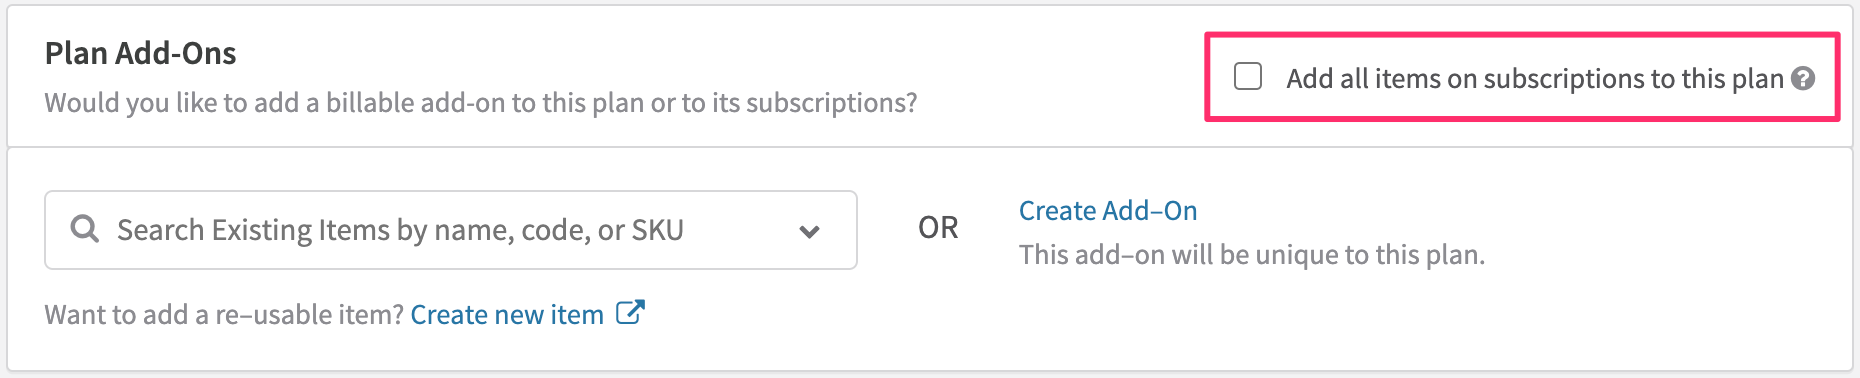 Allowing Subscription-Level Configuration of Item-Based Add-Ons